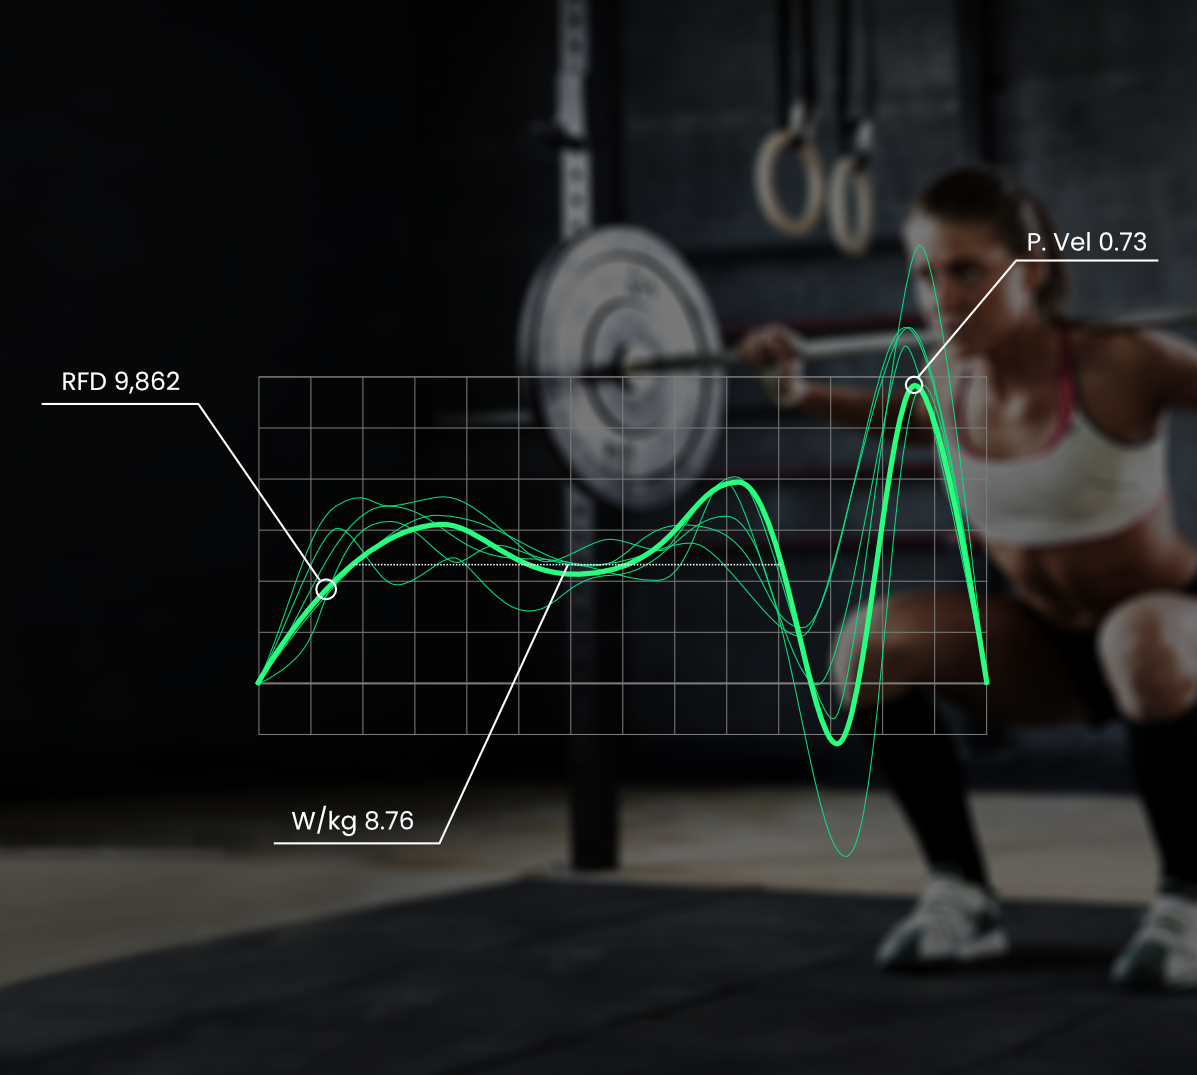 A graph over the top of a woman squatting